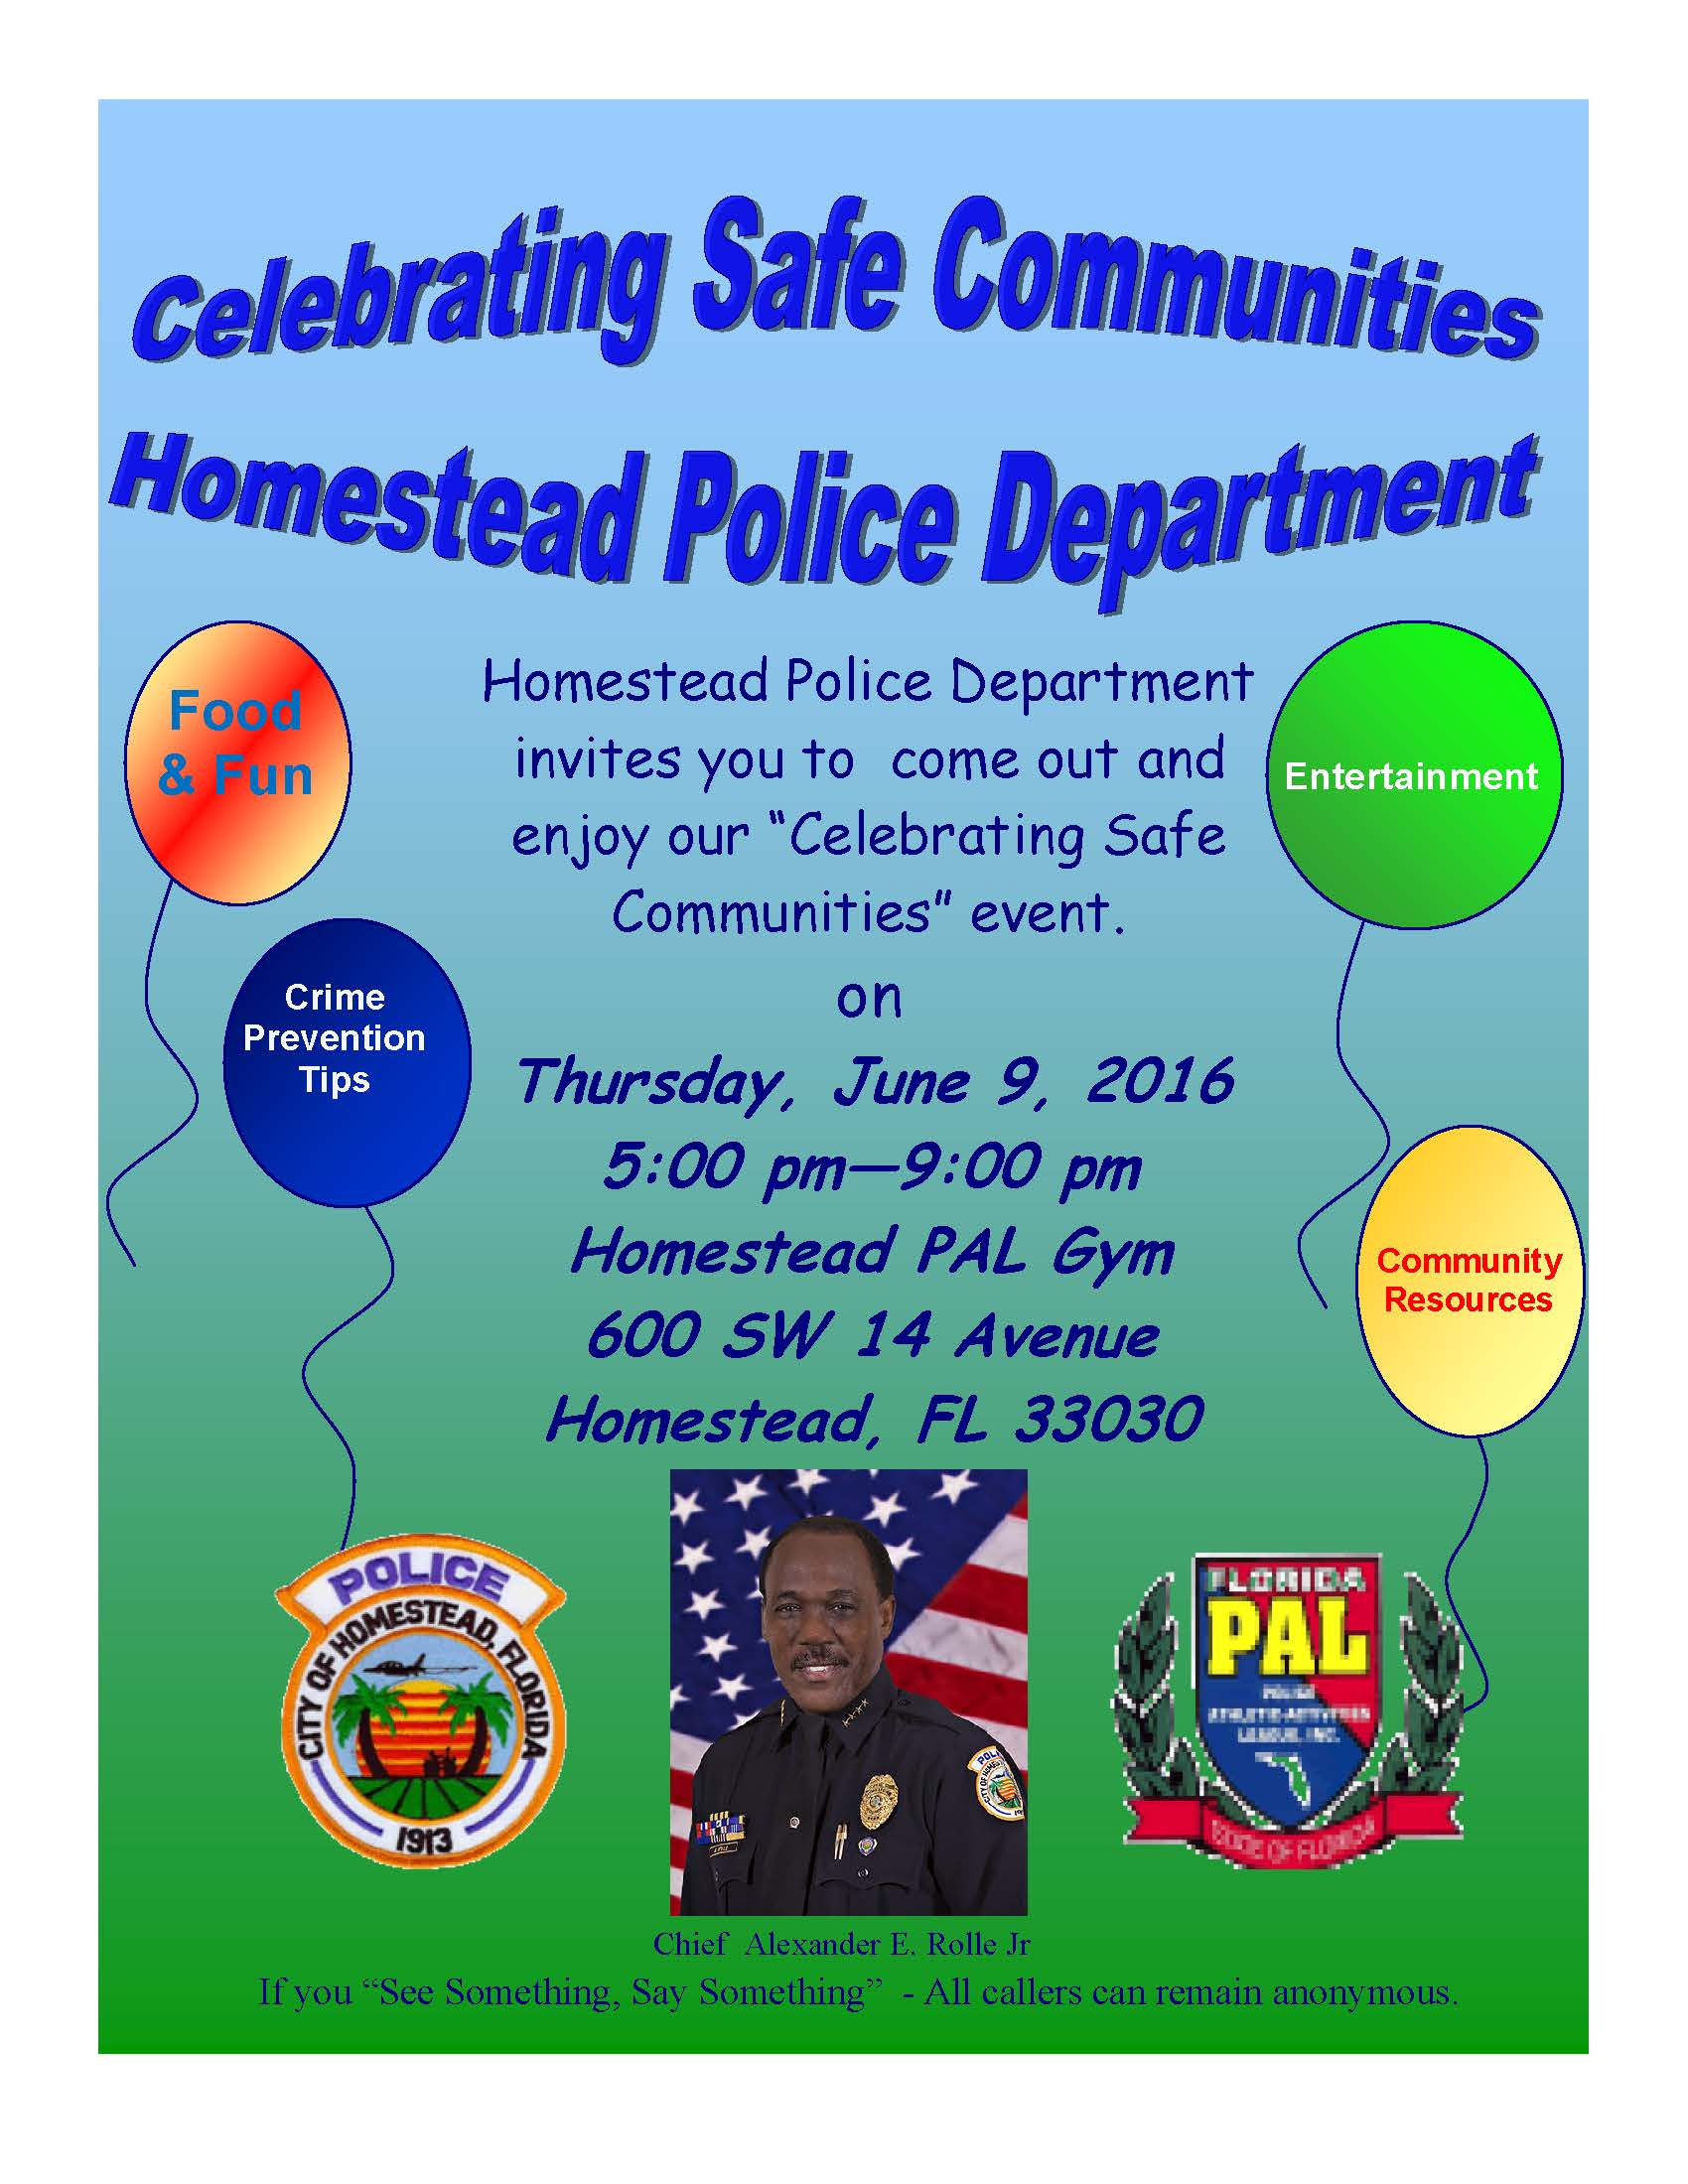 Celebrating Safe Communities June 9, 2016